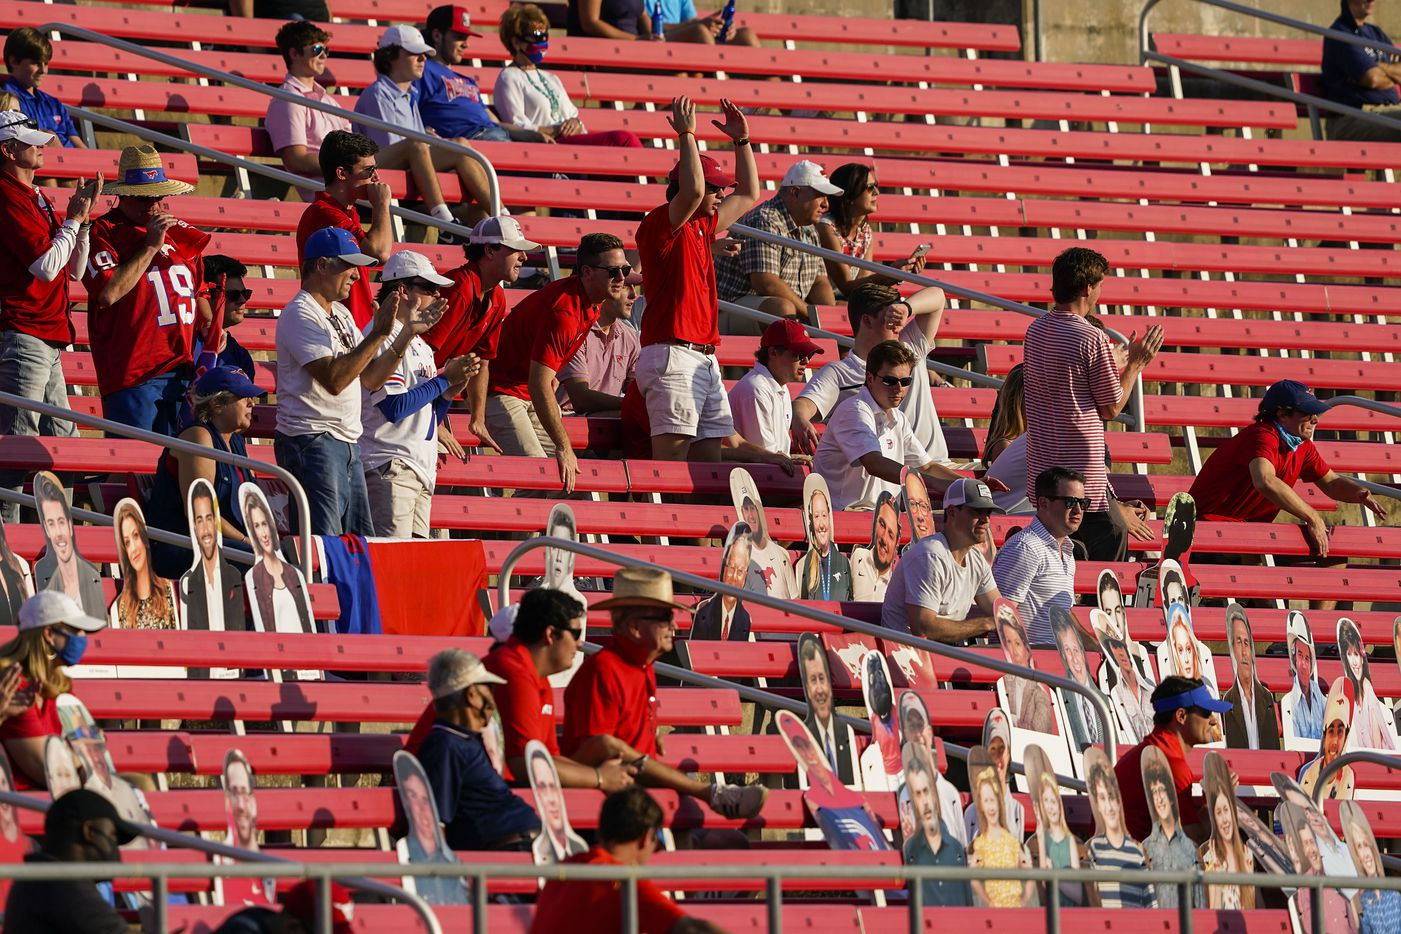 SMU fans cheer their defense during the second half of an NCAA football game against Memphis at Ford Stadium on Saturday, Oct. 3, 2020, in Dallas.